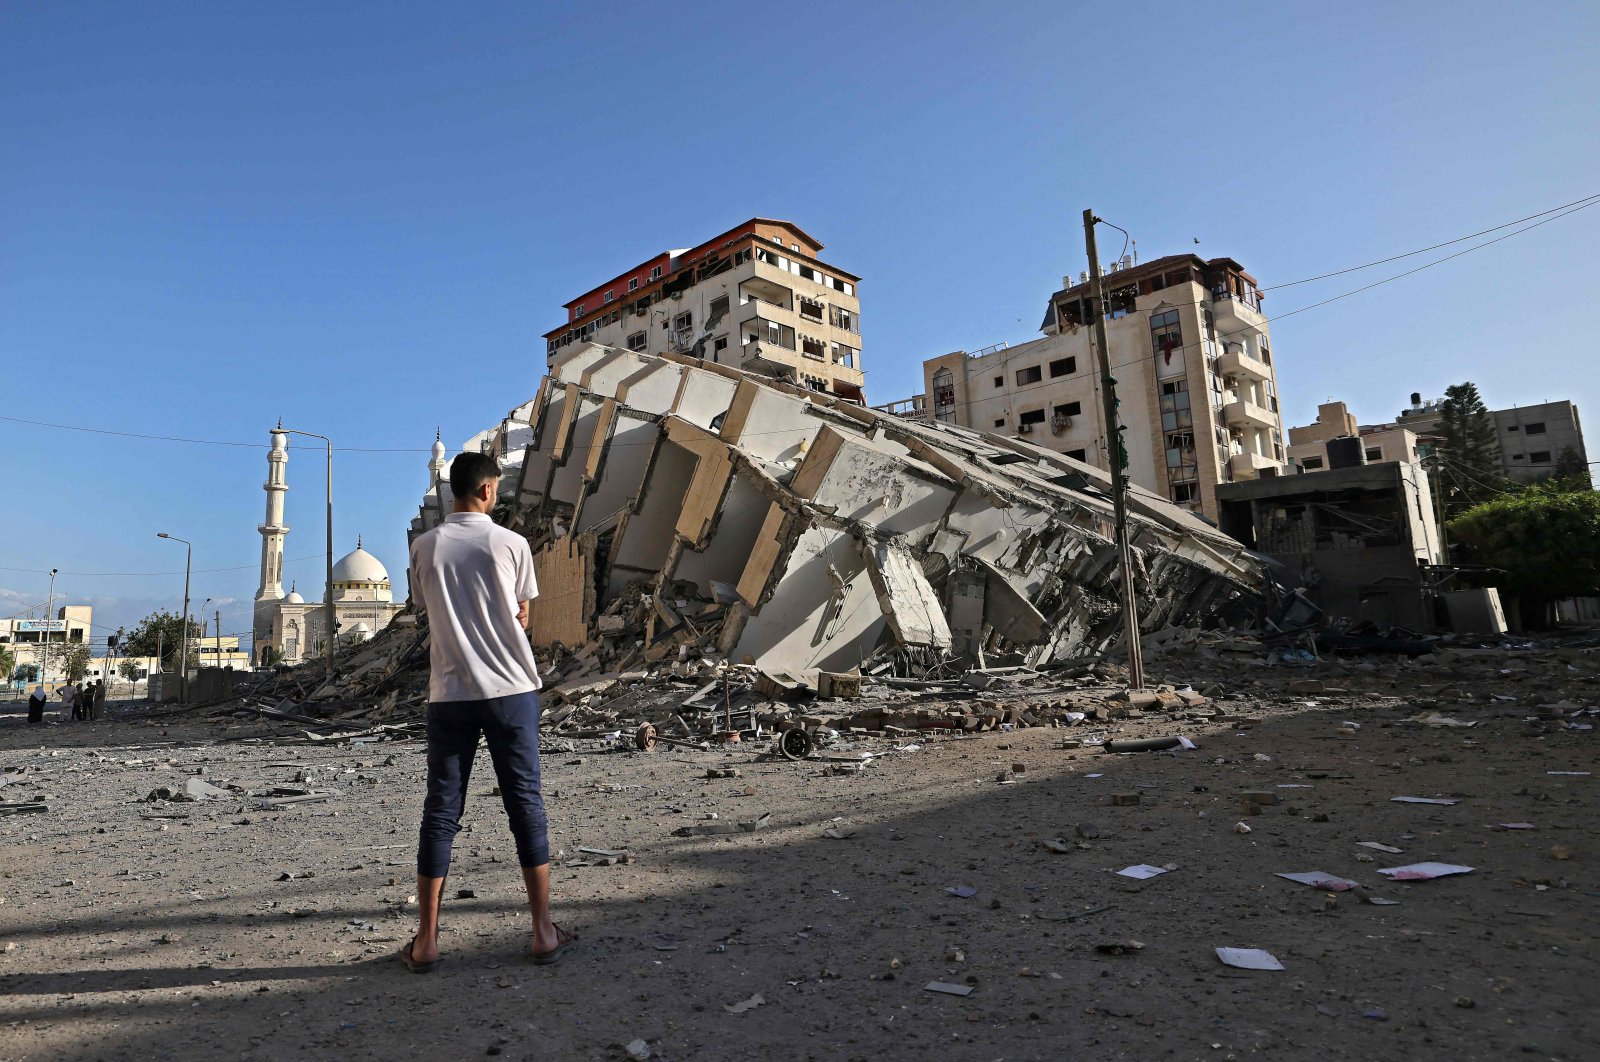 A Palestinian man looks at a destroyed building in Gaza City, following a series of Israeli airstrikes on the Gaza Strip, Palestine, May 12, 2021. (AFP Photo)